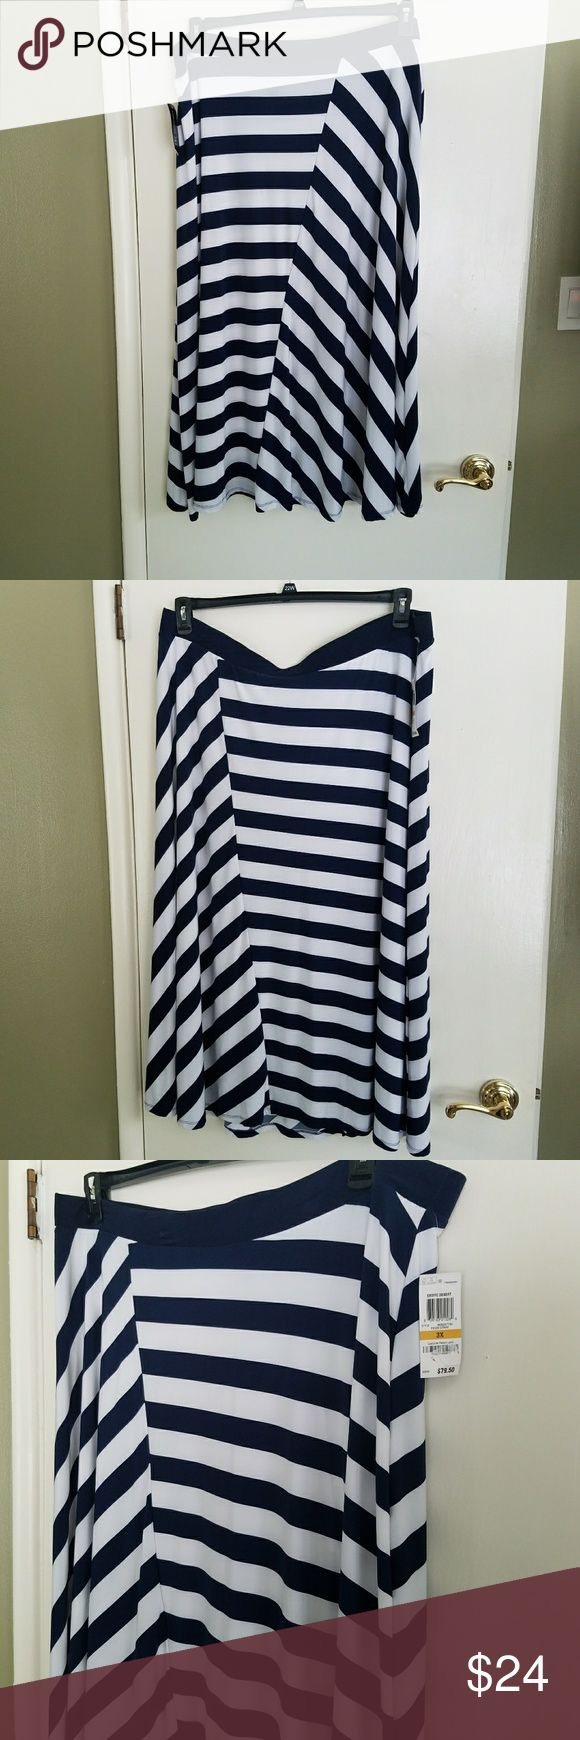 NWT INC Maxi length Navy Blue and White Skirt This Navy Blue and White flared skirt was purchased by me and never worn.  It's very femine and great for twirling. INC International Concepts Skirts Maxi